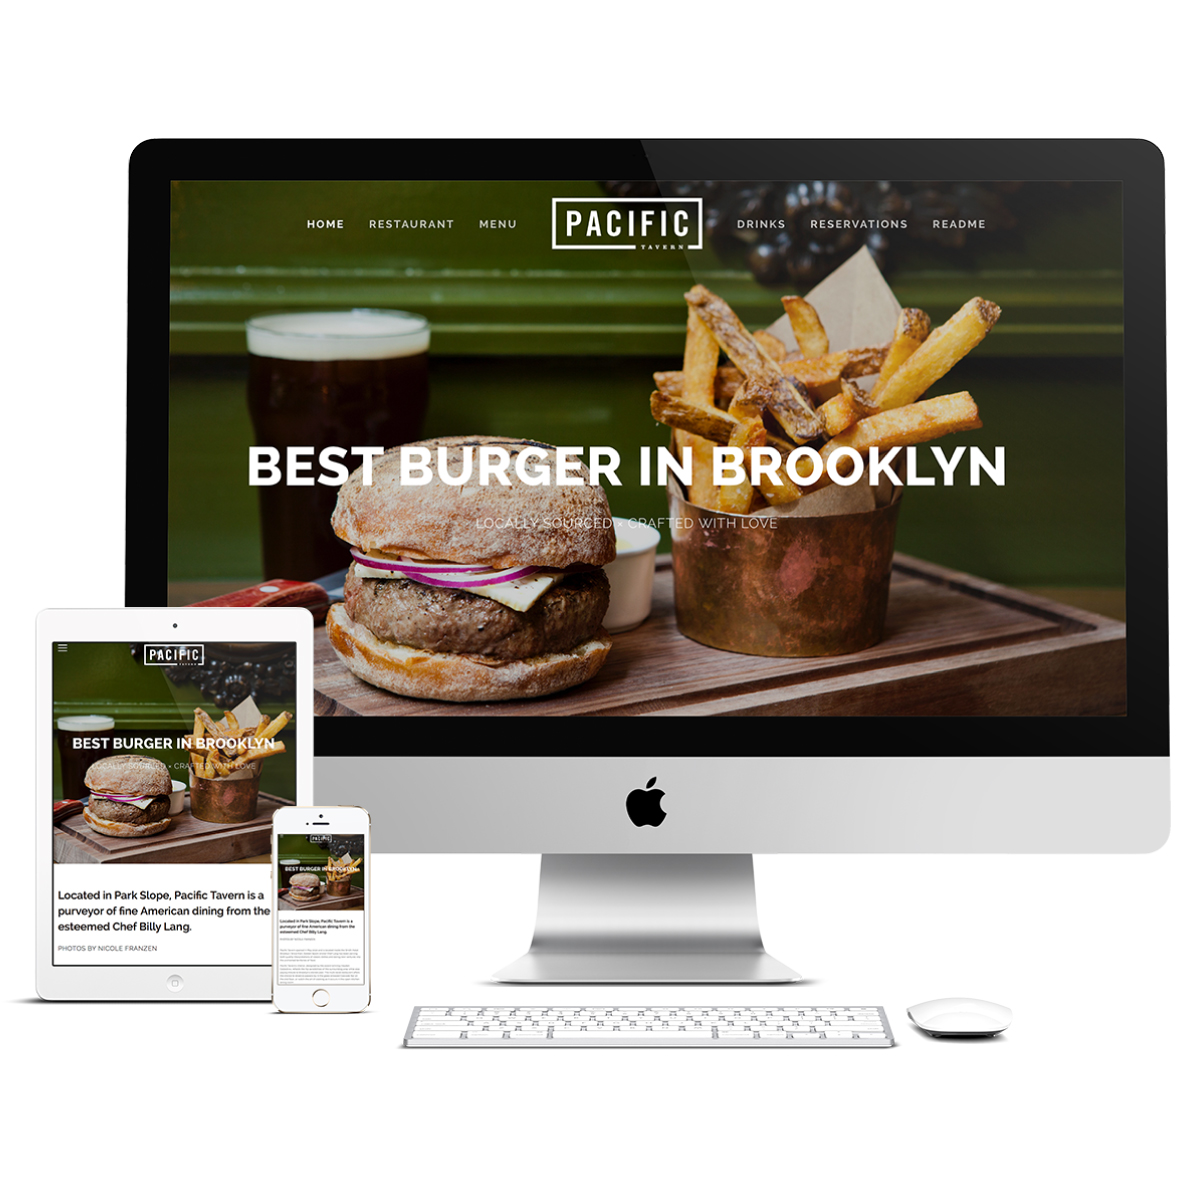 Alex is like no other template - so it's perfect for your engagement. Alex helps you tell your story in a dynamic, engaging, and fun way that uses parallax scrolling and stunning, full-screen imagery to give visitors an unforgettable experience.